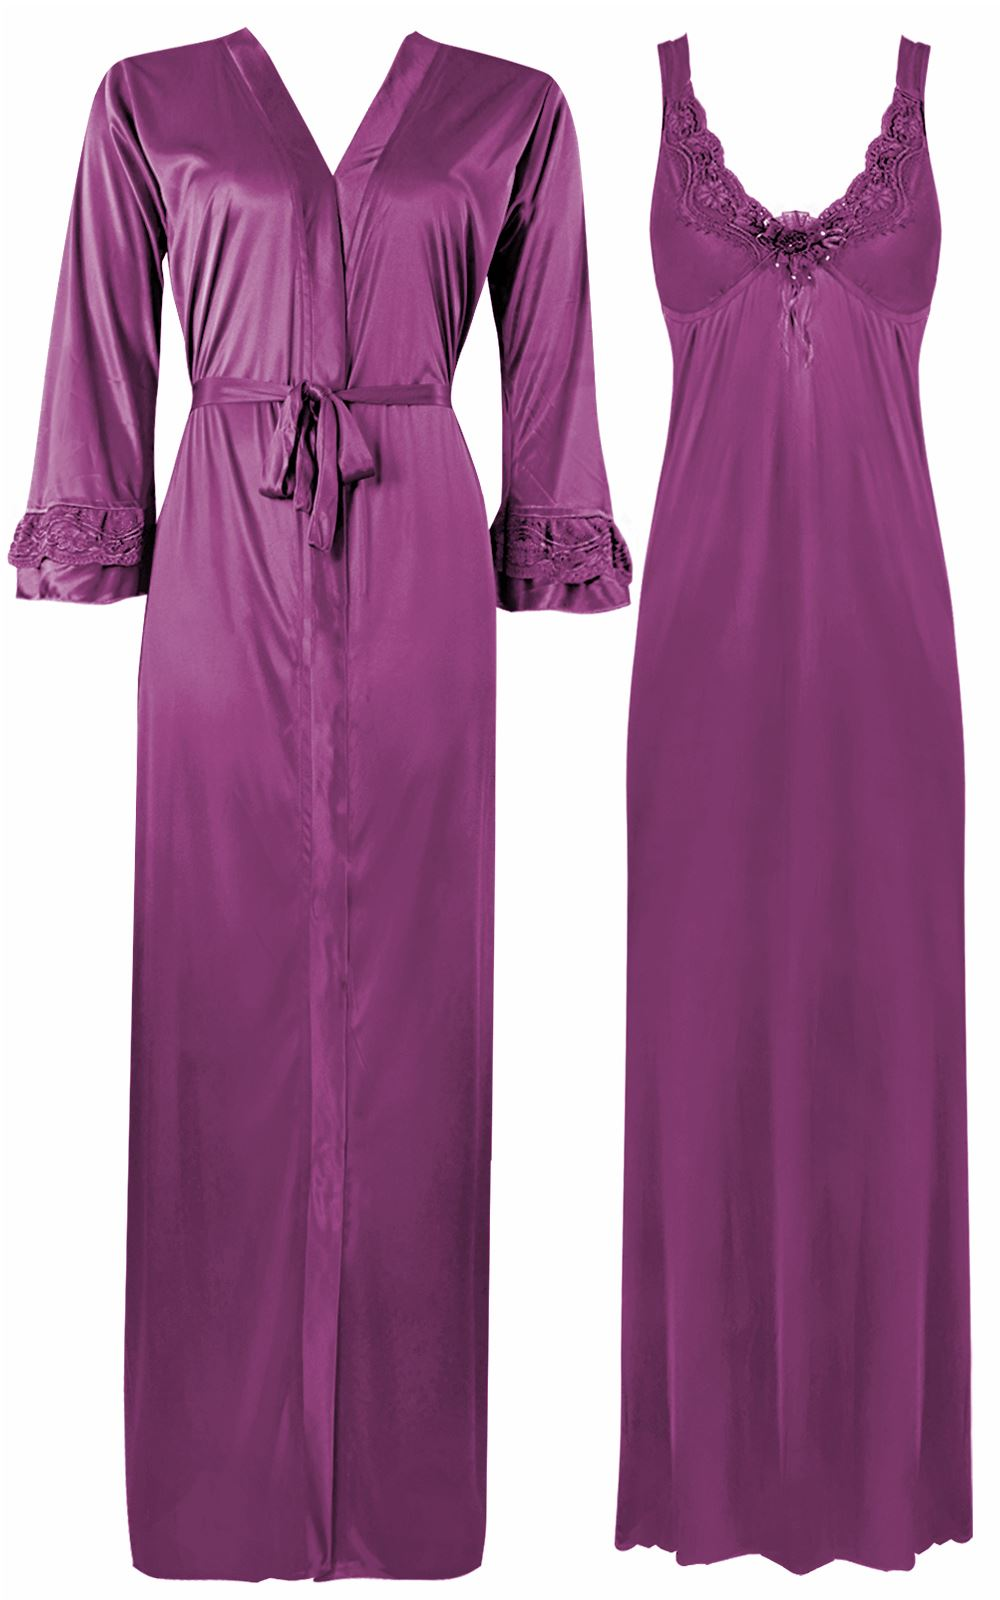 Color: Light Purple 2 Piece Satin Nighty and Robe With Long Sleeve Dressing Gown Size: XL